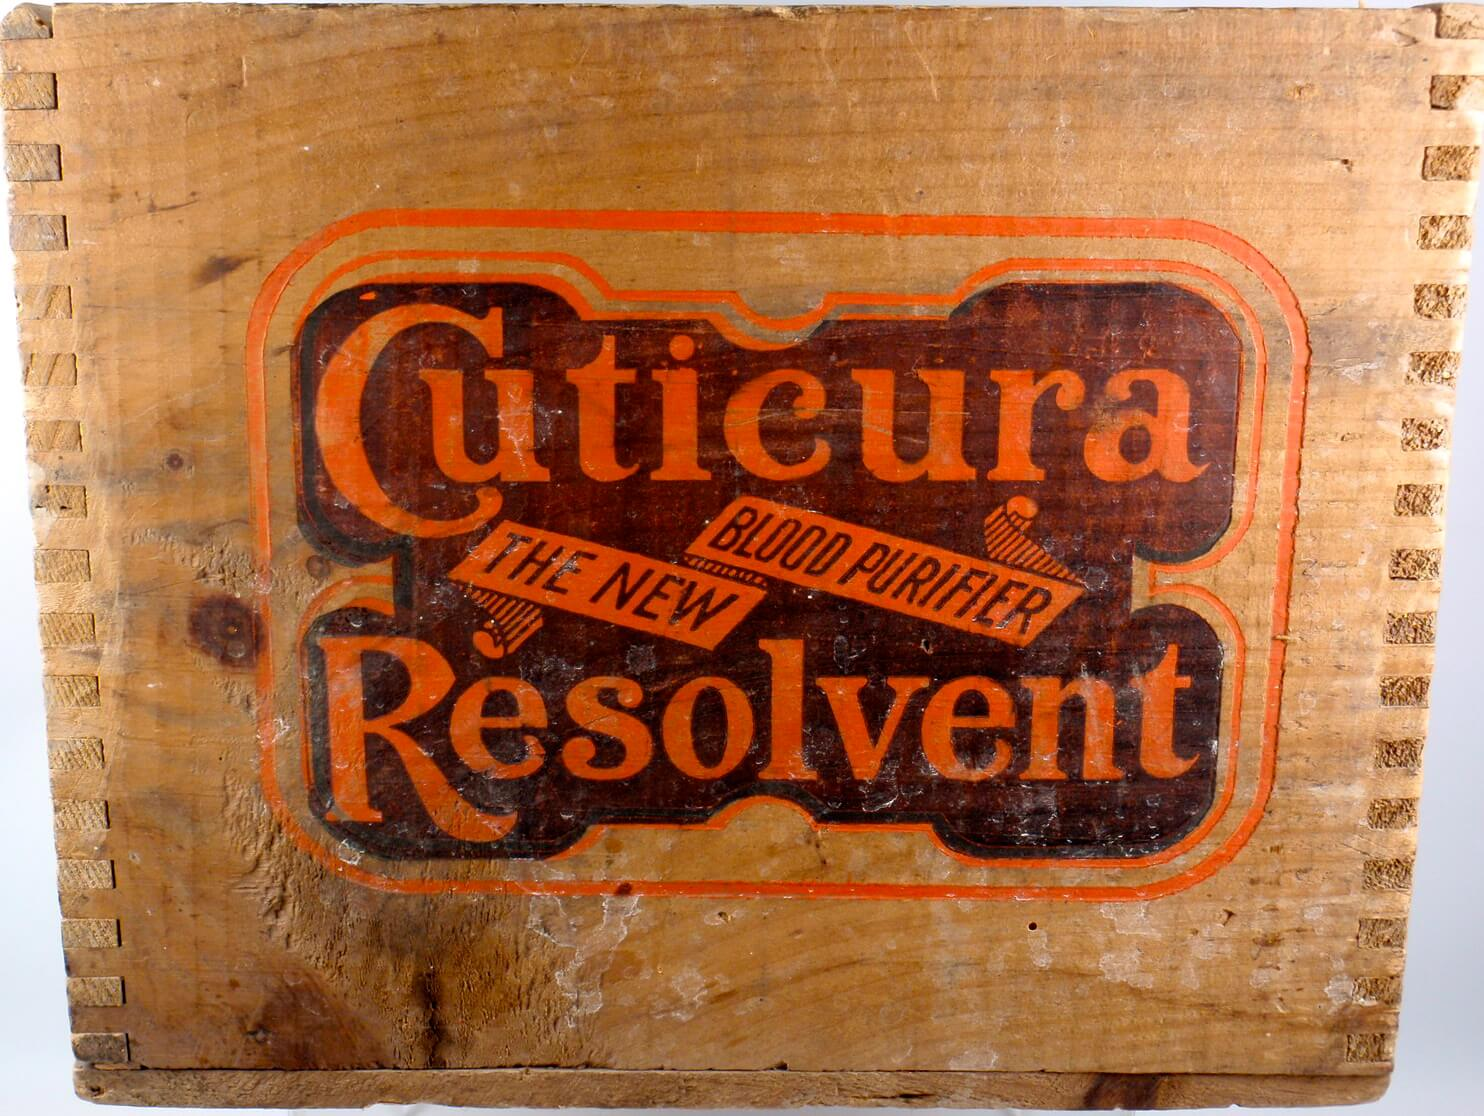 CUTICURA RESOLVENT BLOOD PURIFIER SHIPPING CRATE